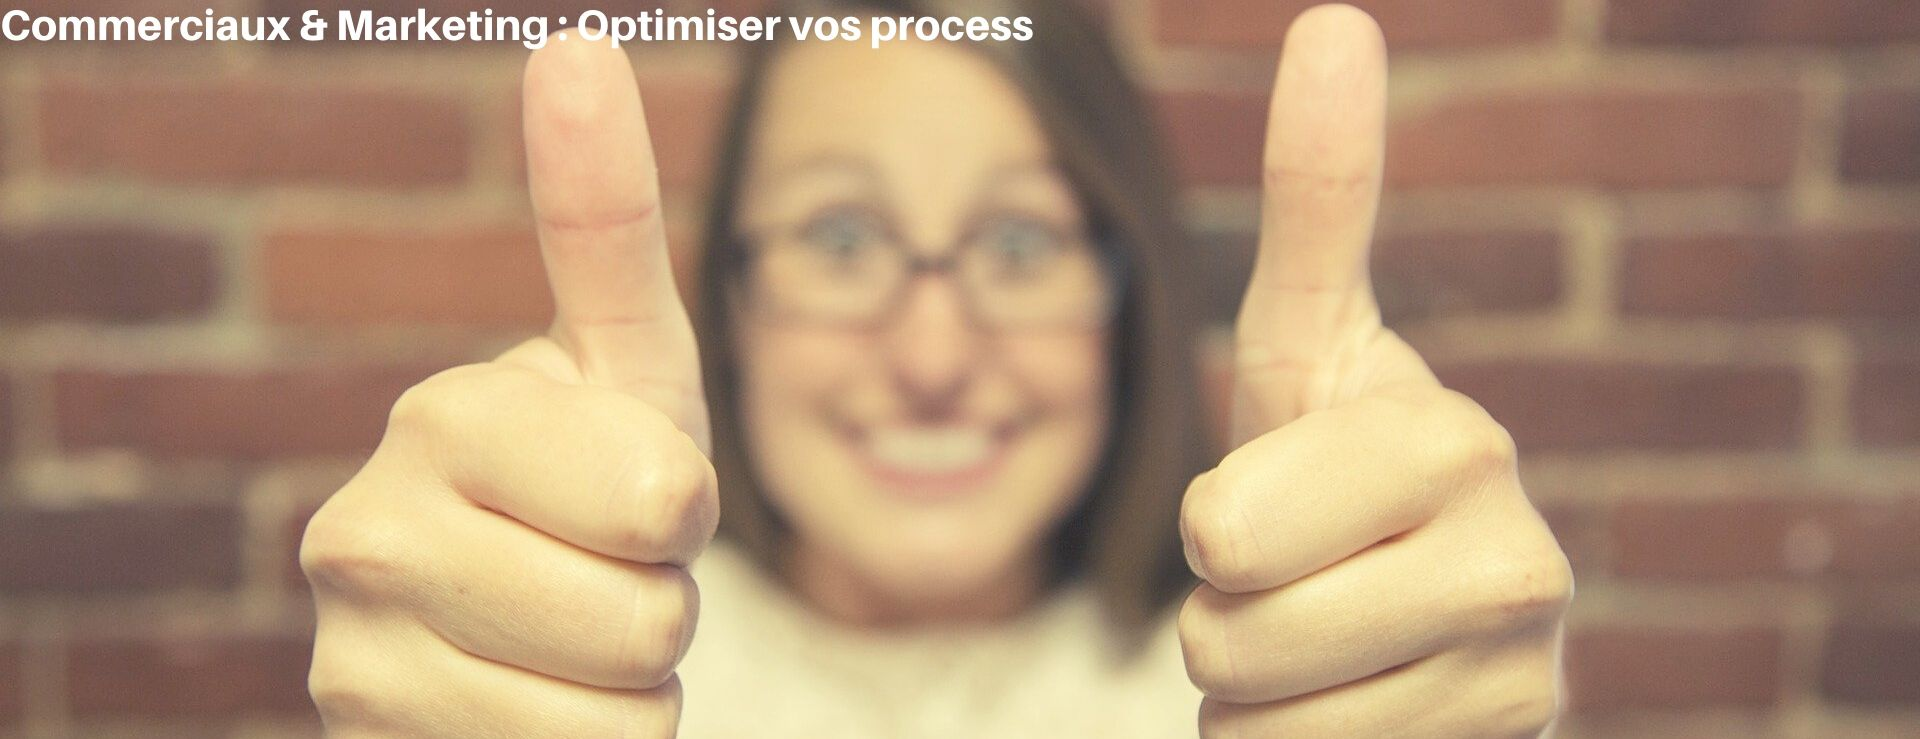 optimiser process